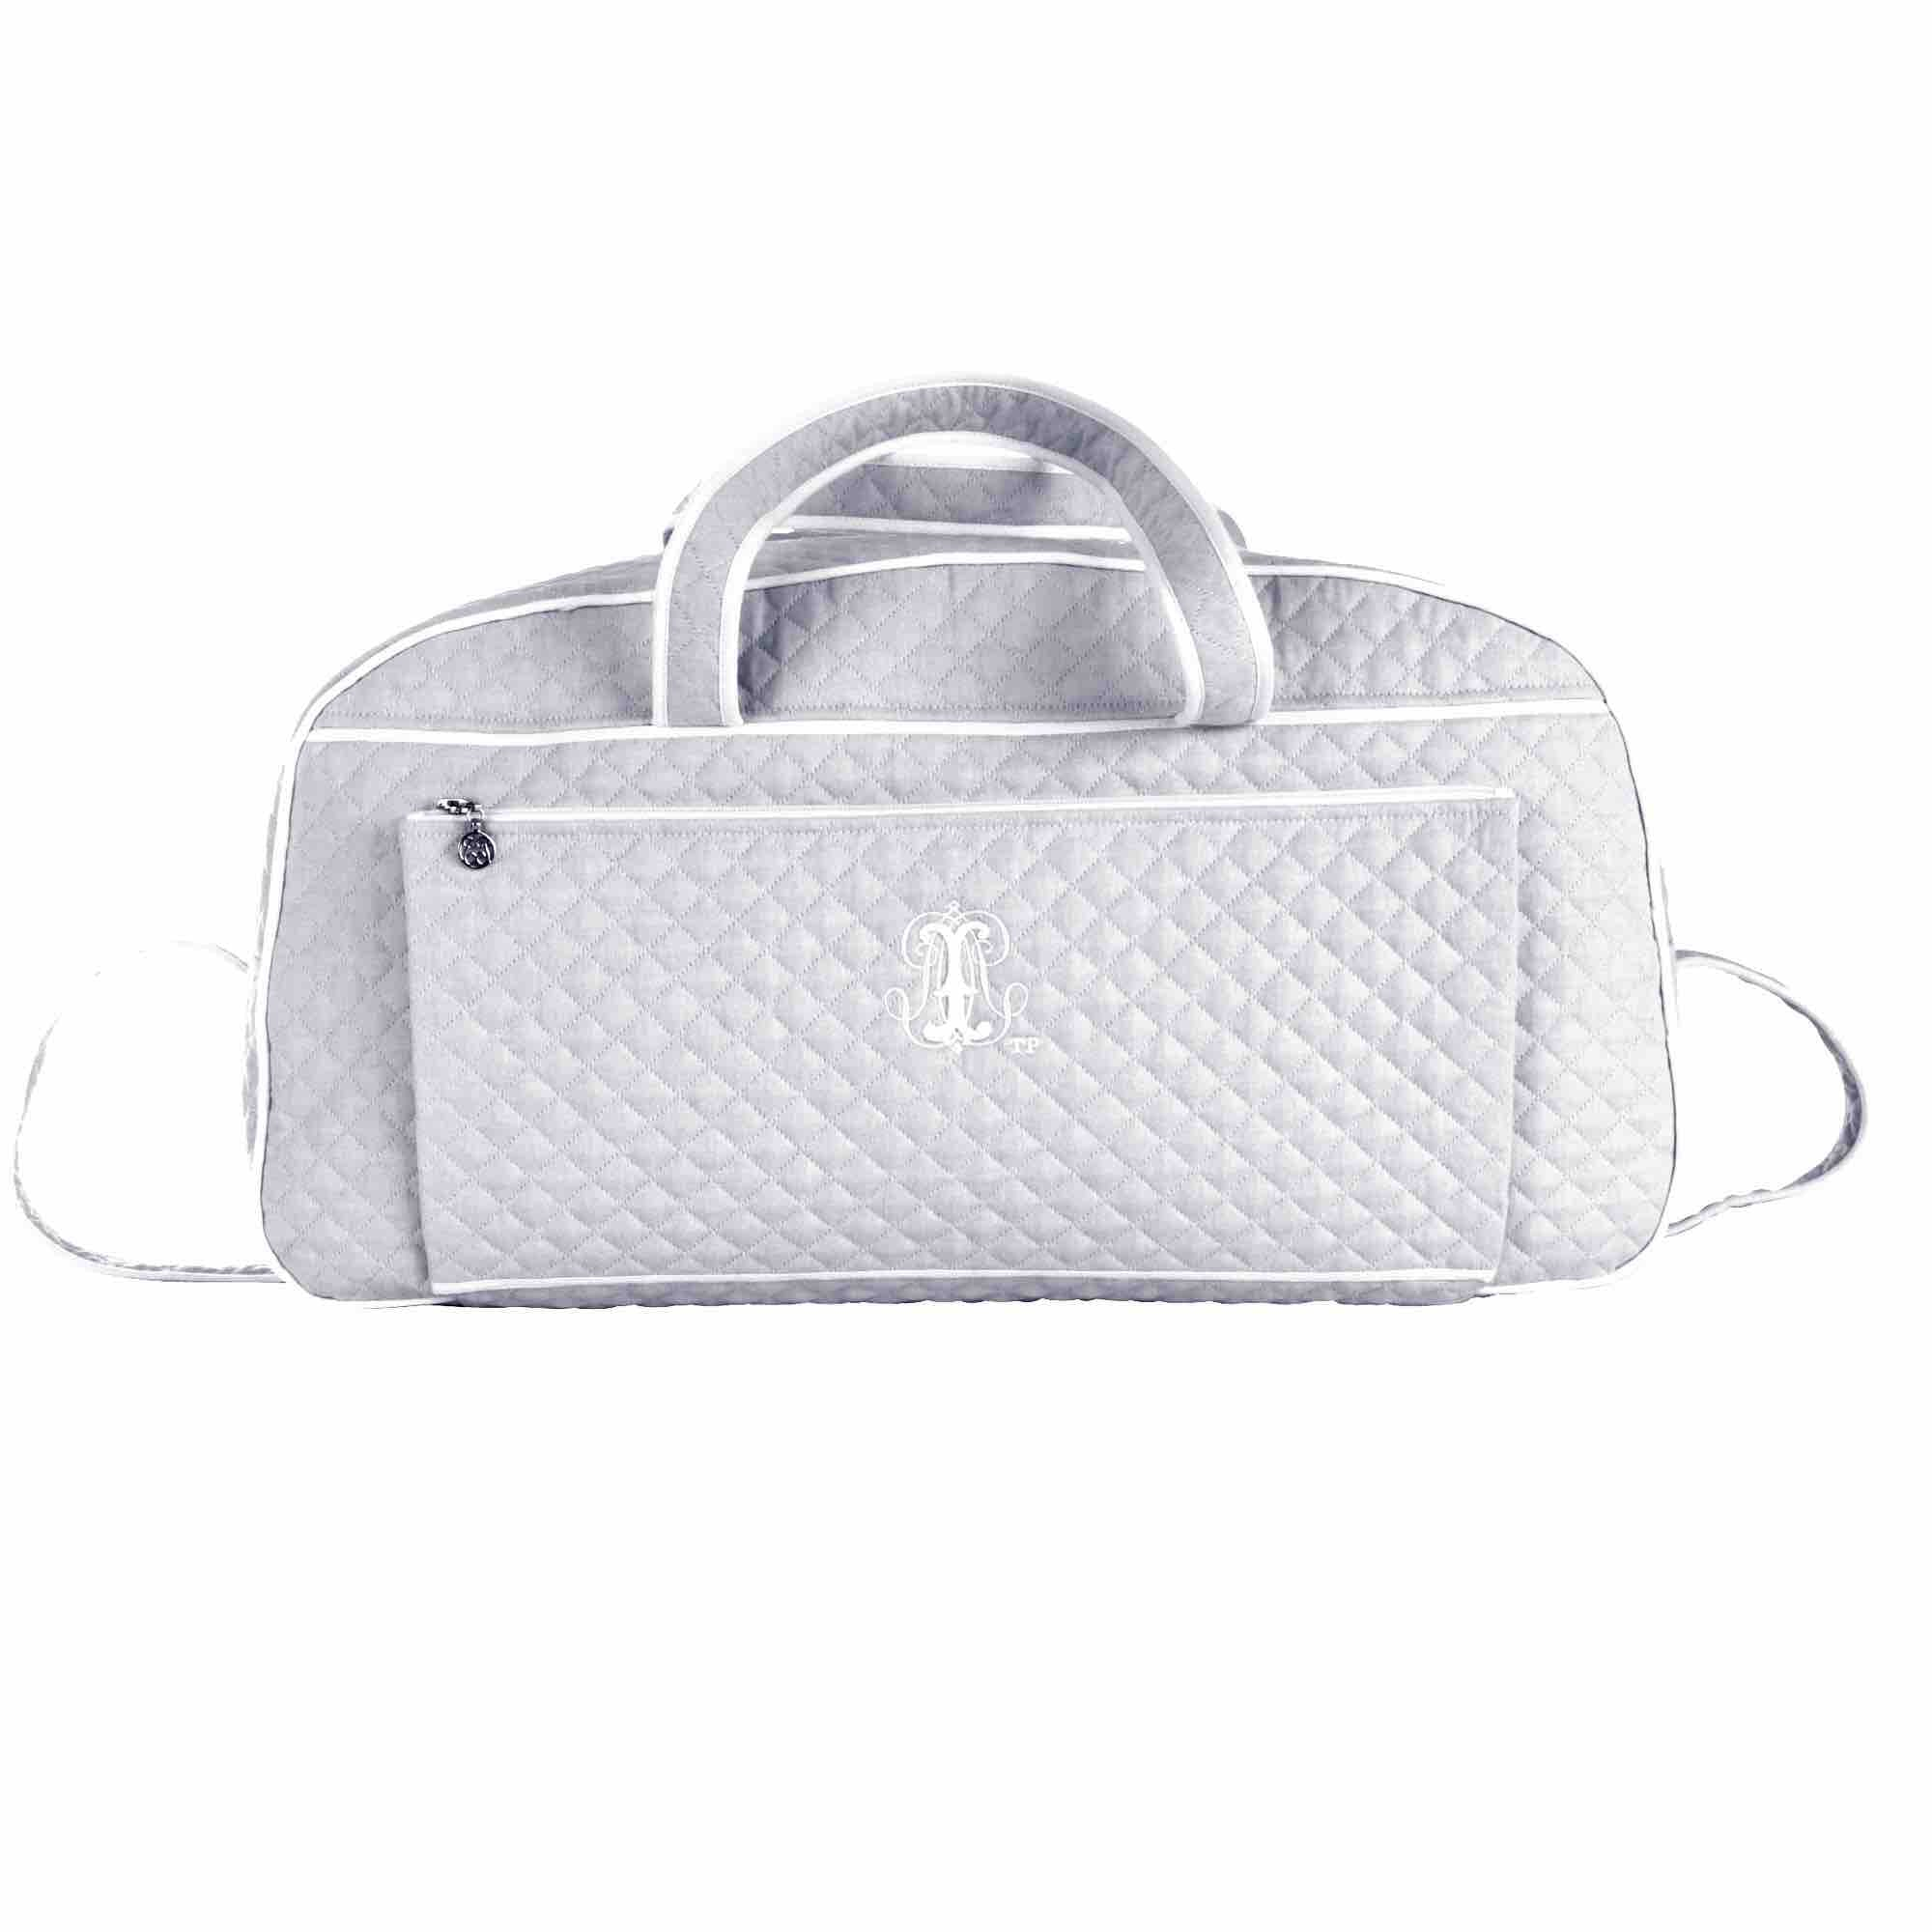 Theophile & Patachou Weekend Bag - Pearl